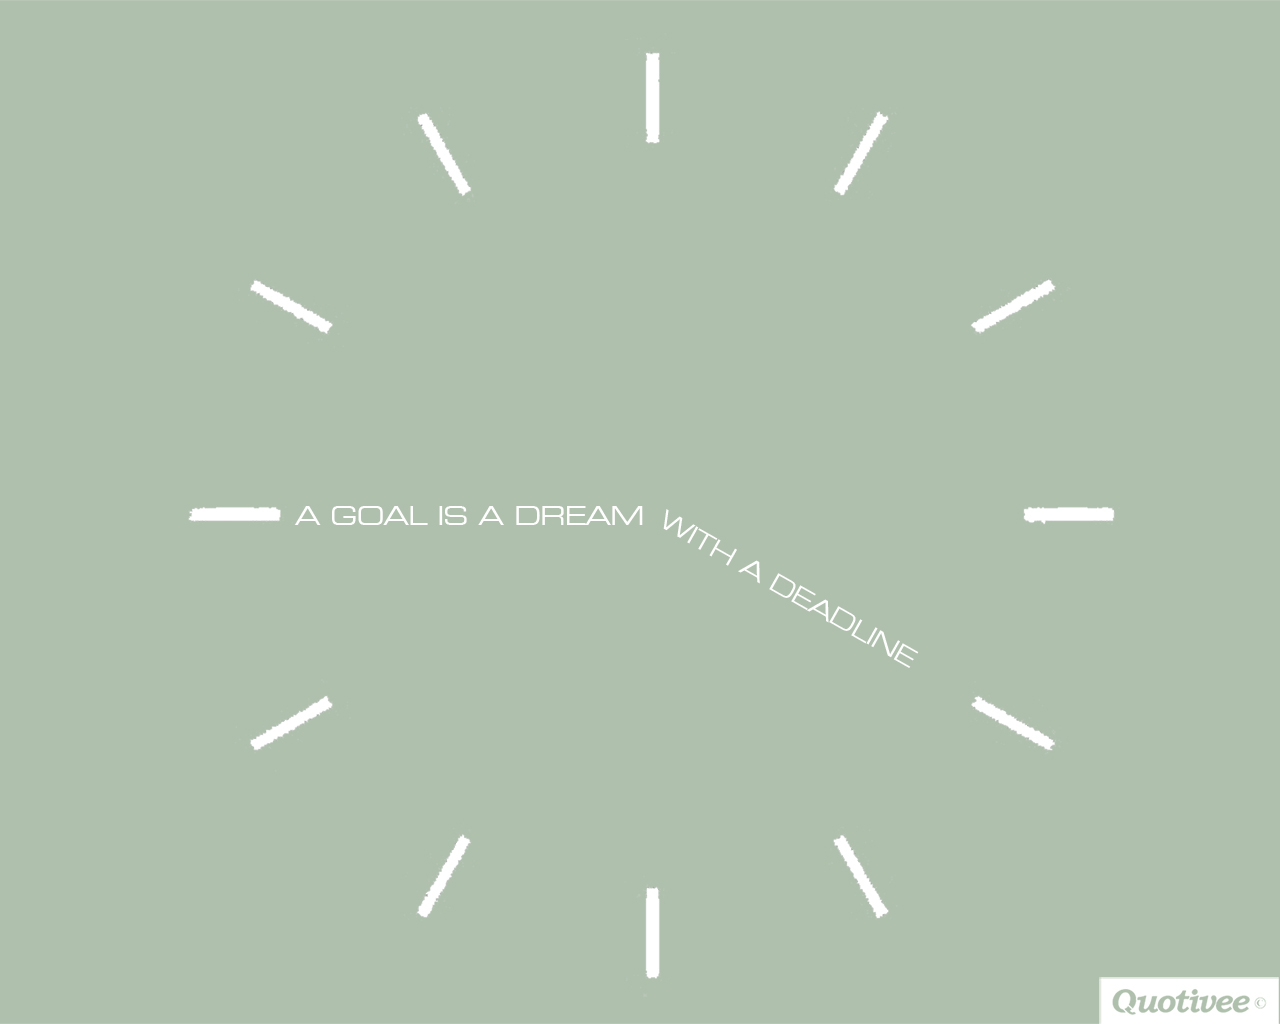 quotivee_1280x1024_0004_A Goal is a dream with a deadline